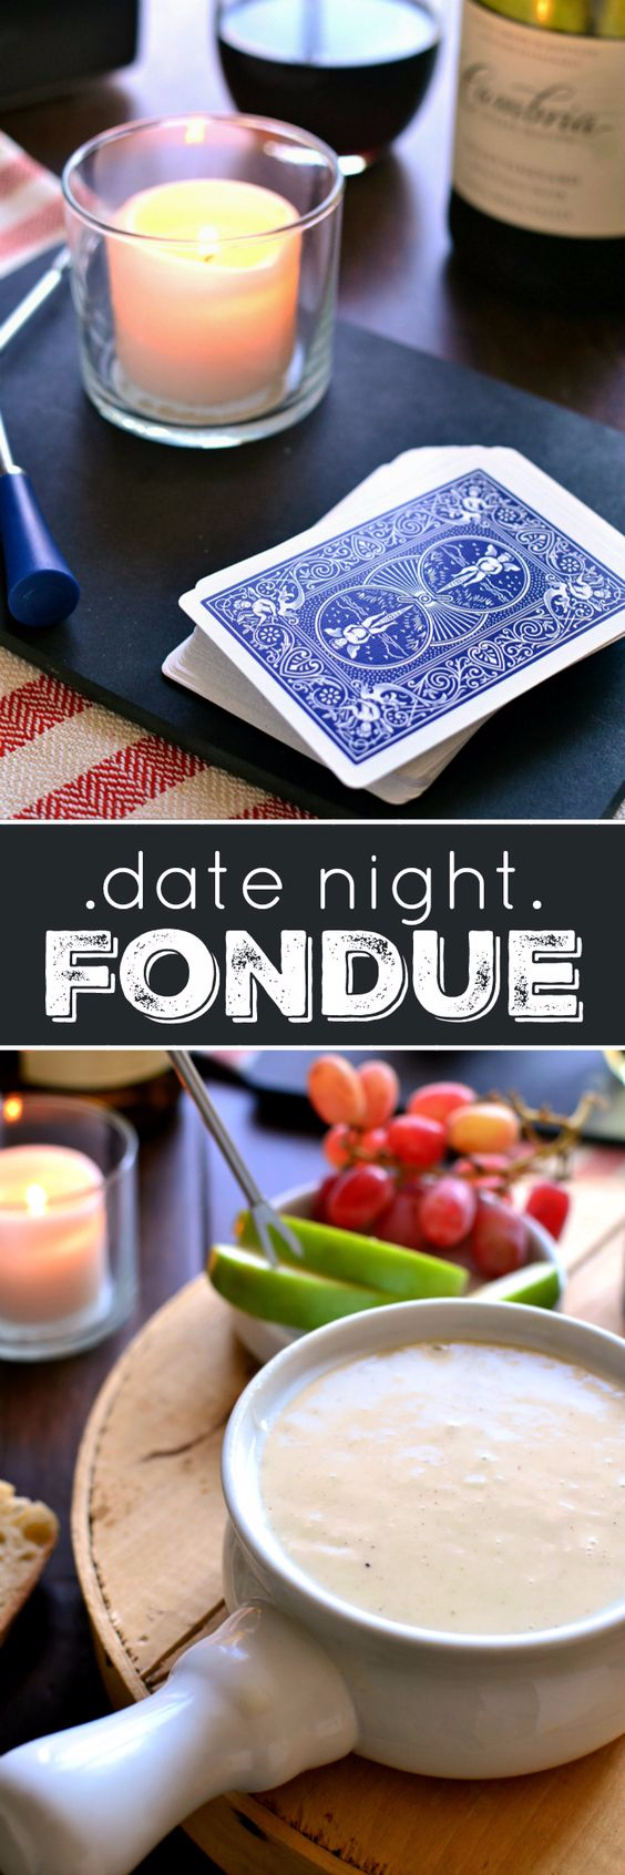 DIY Date Night Ideas - Romantic Fondue Date Night - Creative Ways to Go On Inexpensive Dates - Creative Ways for Couples to Spend Time Together creative date nights diy idea